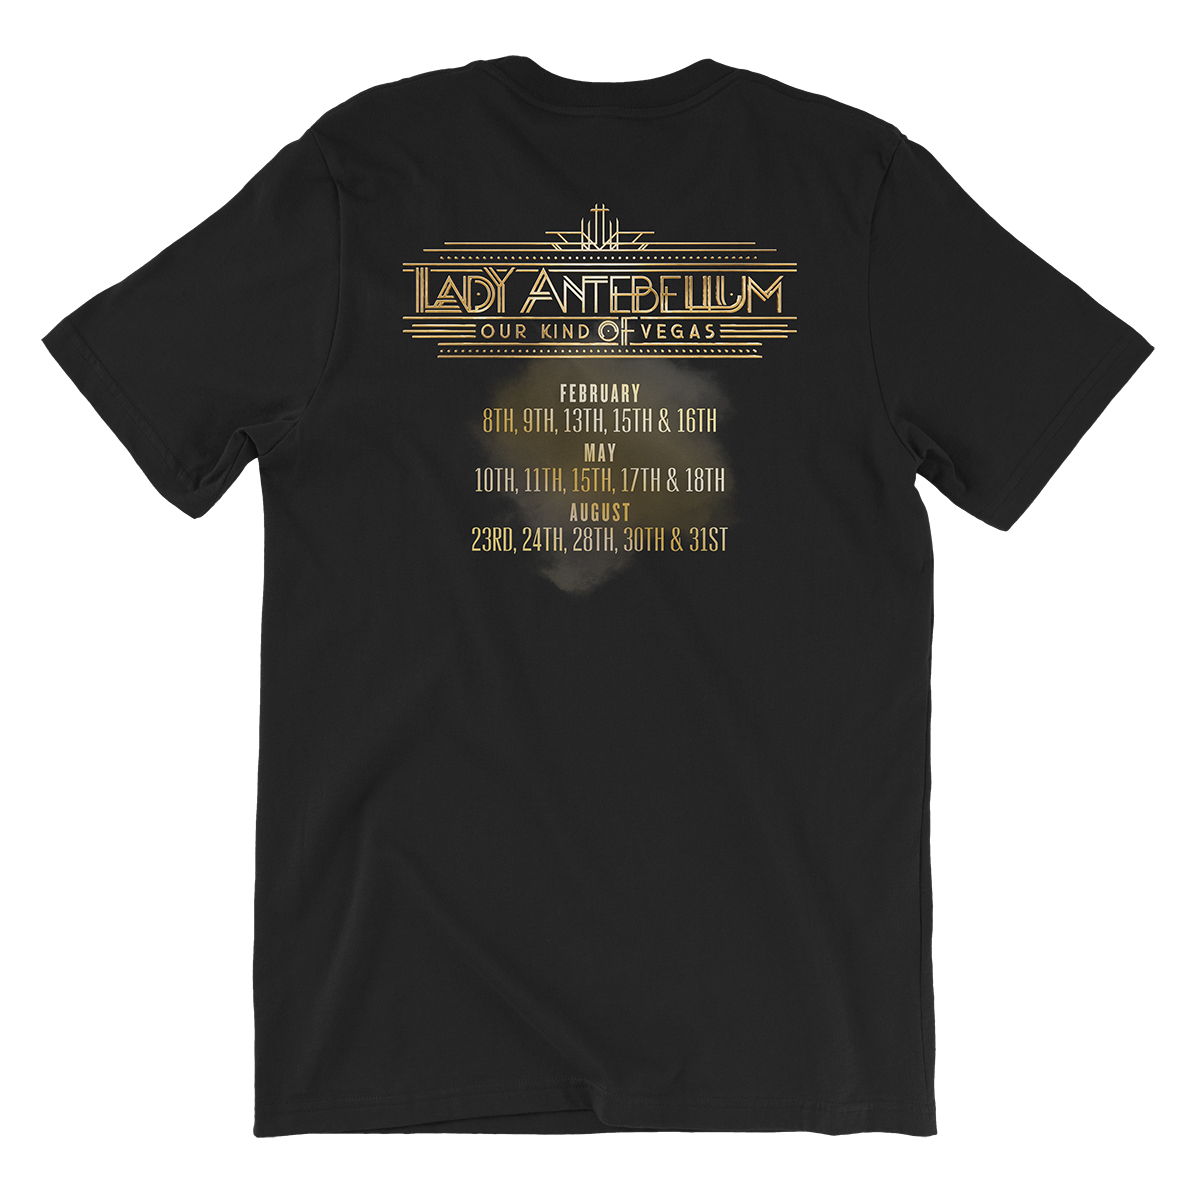 Lady Antebellum Live Mic Photo Vegas Tour Black T-shirt